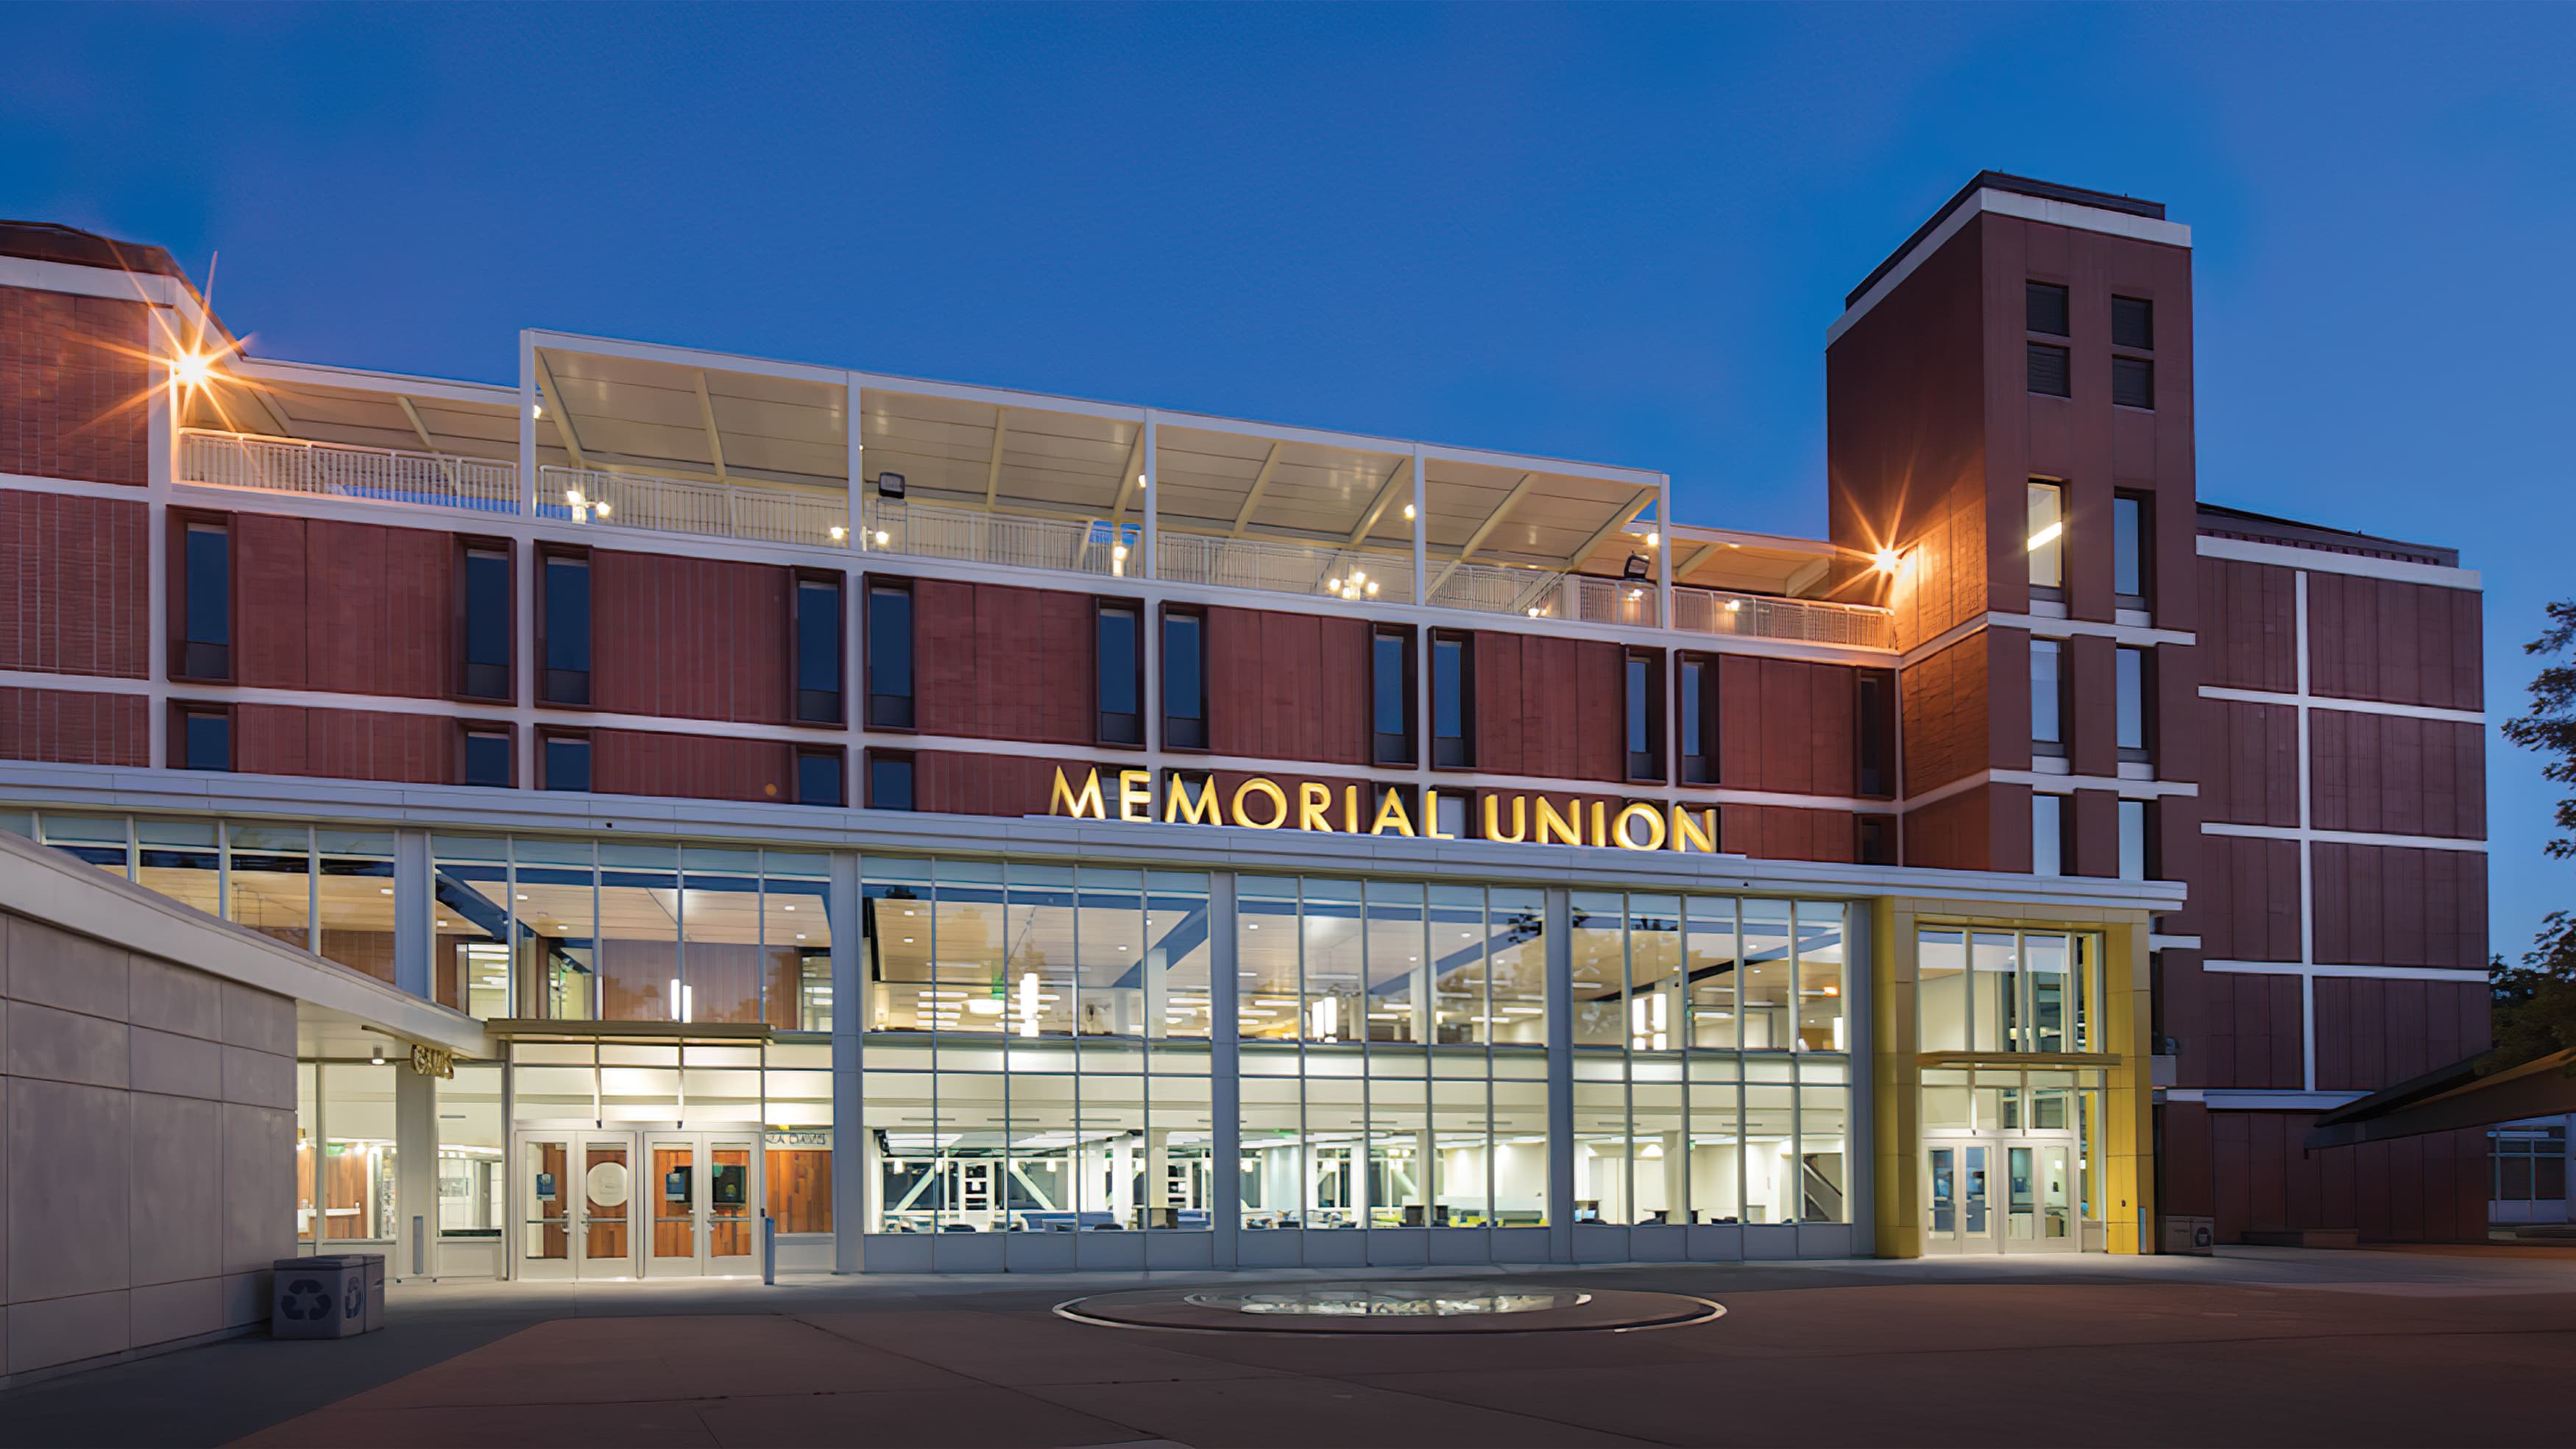 Memorial Union dimensional project identity on brick campus building